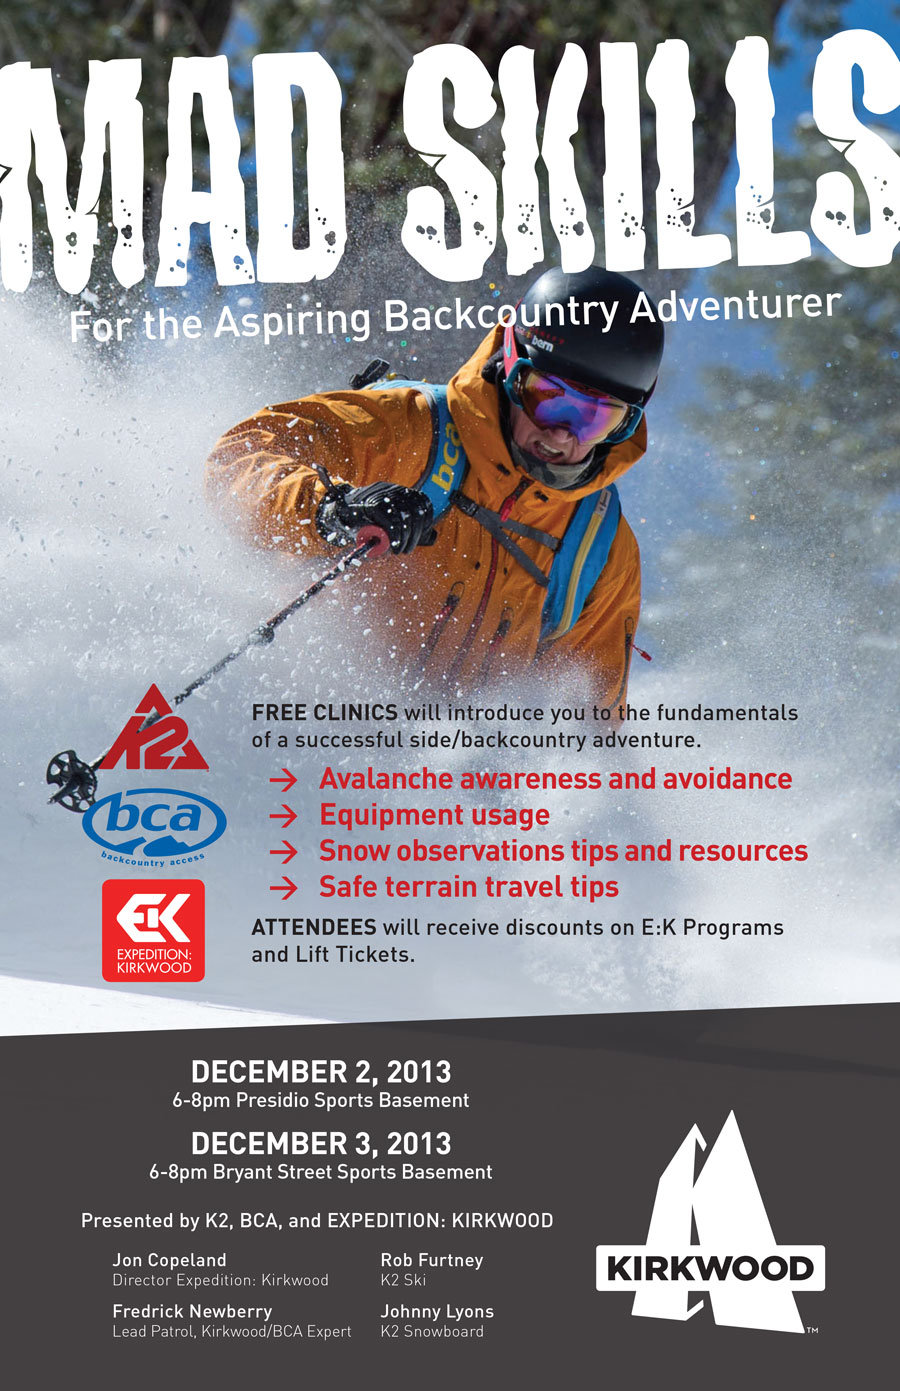 Learn some of the backcountry basics at Sports Basement in San Francisco on Dec 2nd and 3rd. - © Kirkwood